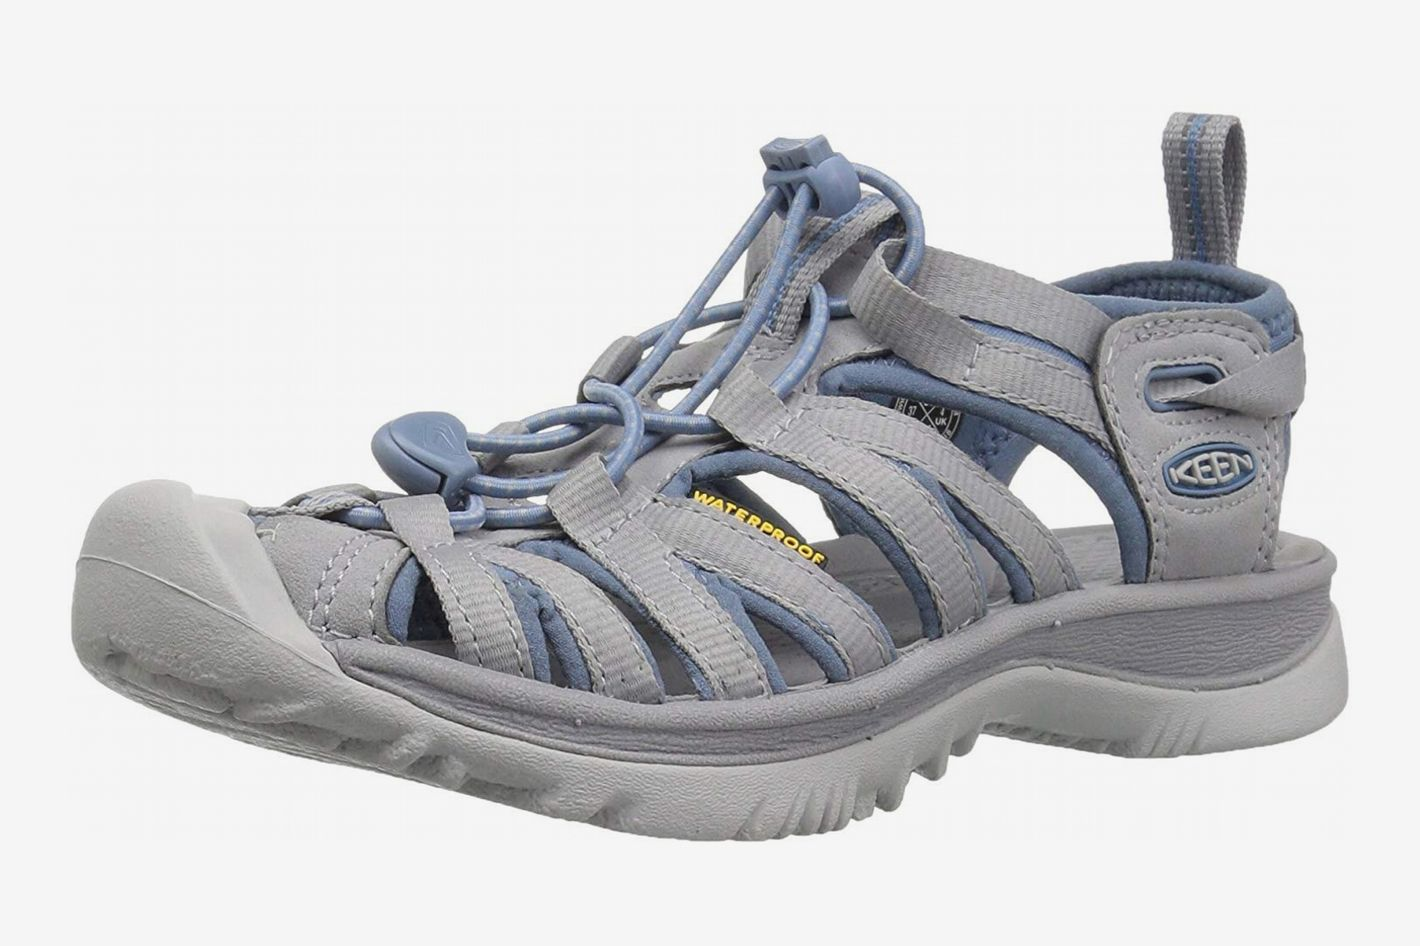 ad786bce7b5 13 Best Hiking Sandals for Men and Women 2019